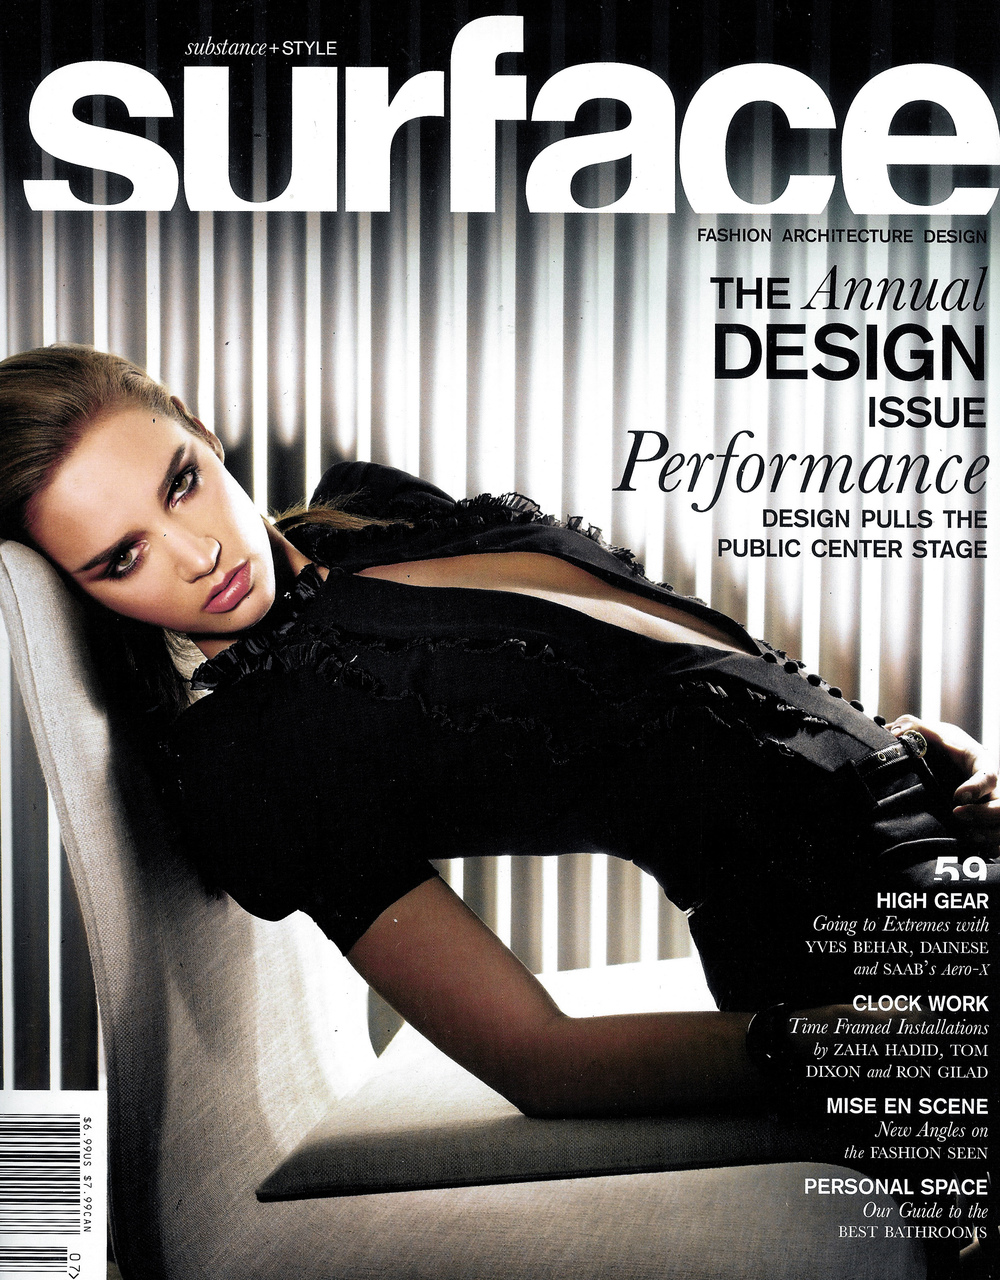 Surface Magazine Annual Design Issue 2006.jpg